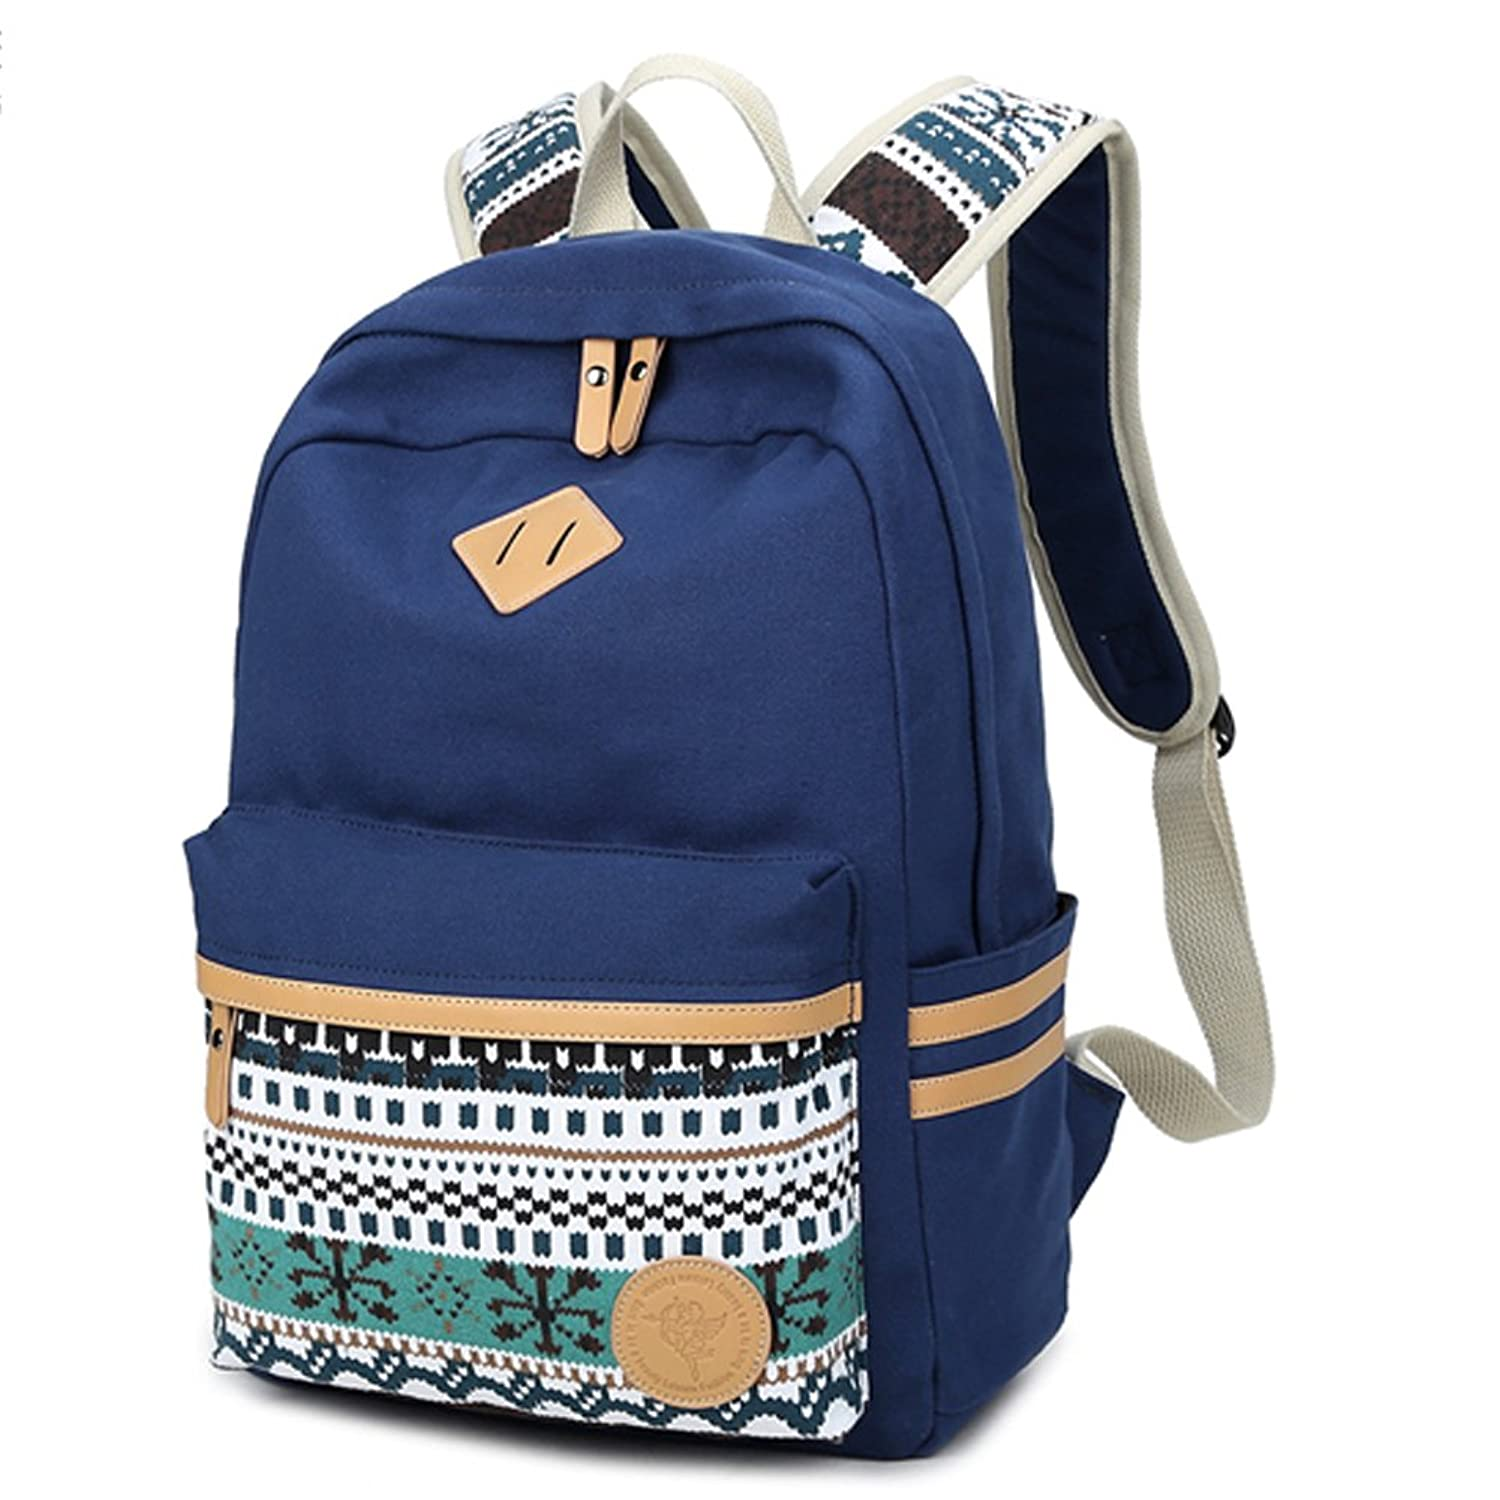 Canvas School Backpack, Classic Travel 14-Inch Laptop Cute Backpacks Student Bookbags for Teen Girls Boys Kids Fresion